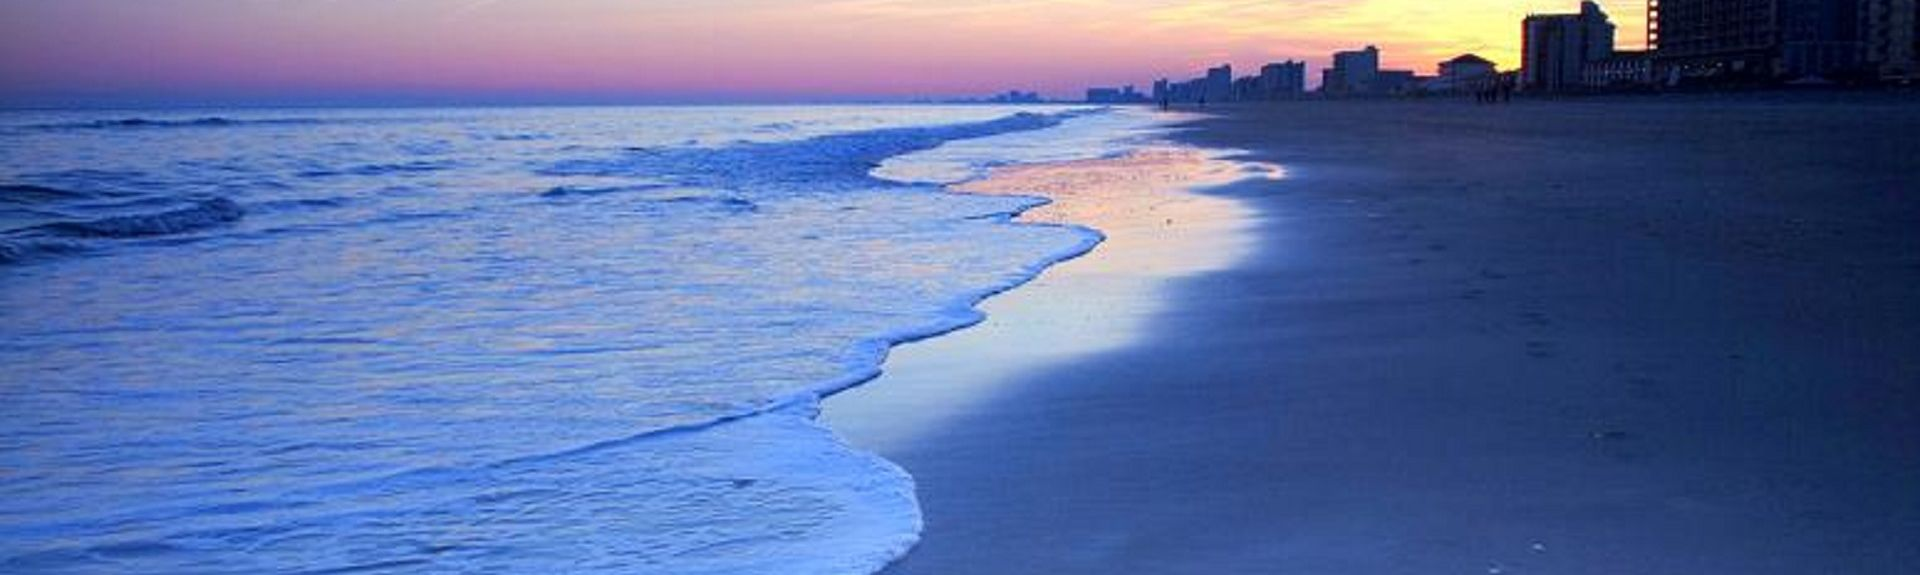 Grand Atlantic Ocean Resort, Myrtle Beach, Caroline du Sud, États-Unis d'Amérique